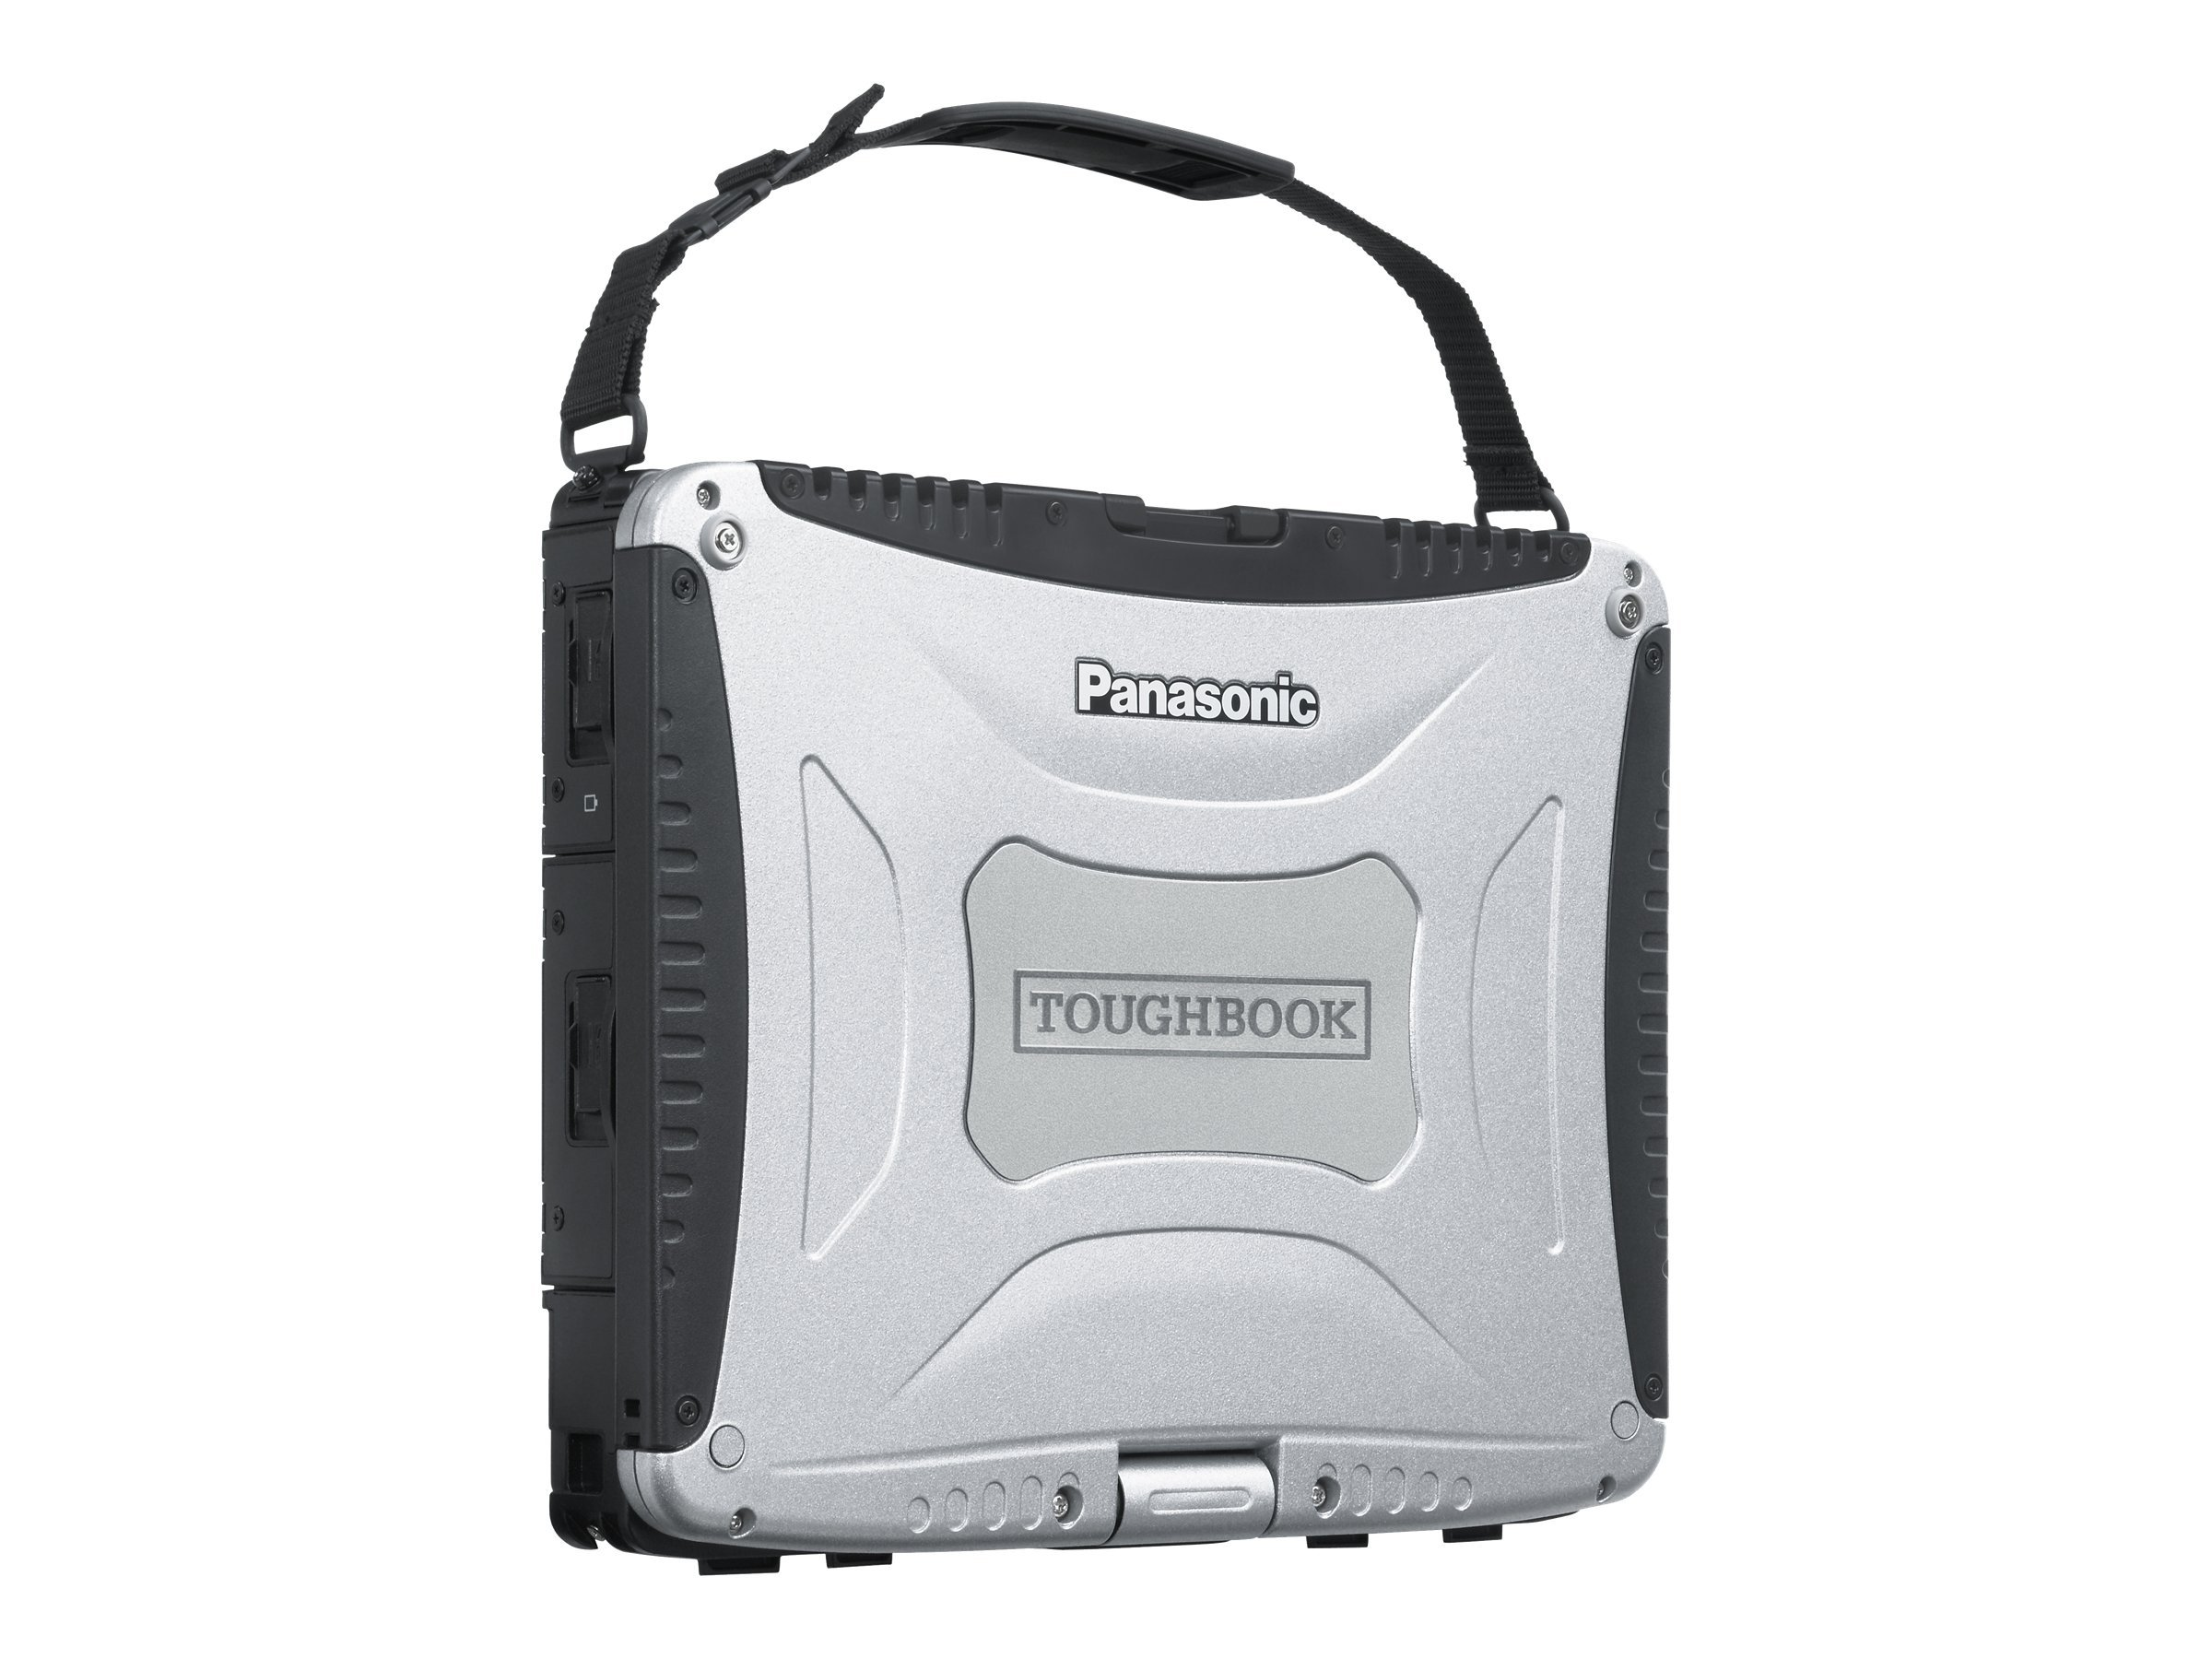 Panasonic Toughbook 19 vPro Core i5-3610ME 2.7GHz 128GB 10.1 XGA MT W8.1P, CF-19ZE301BM